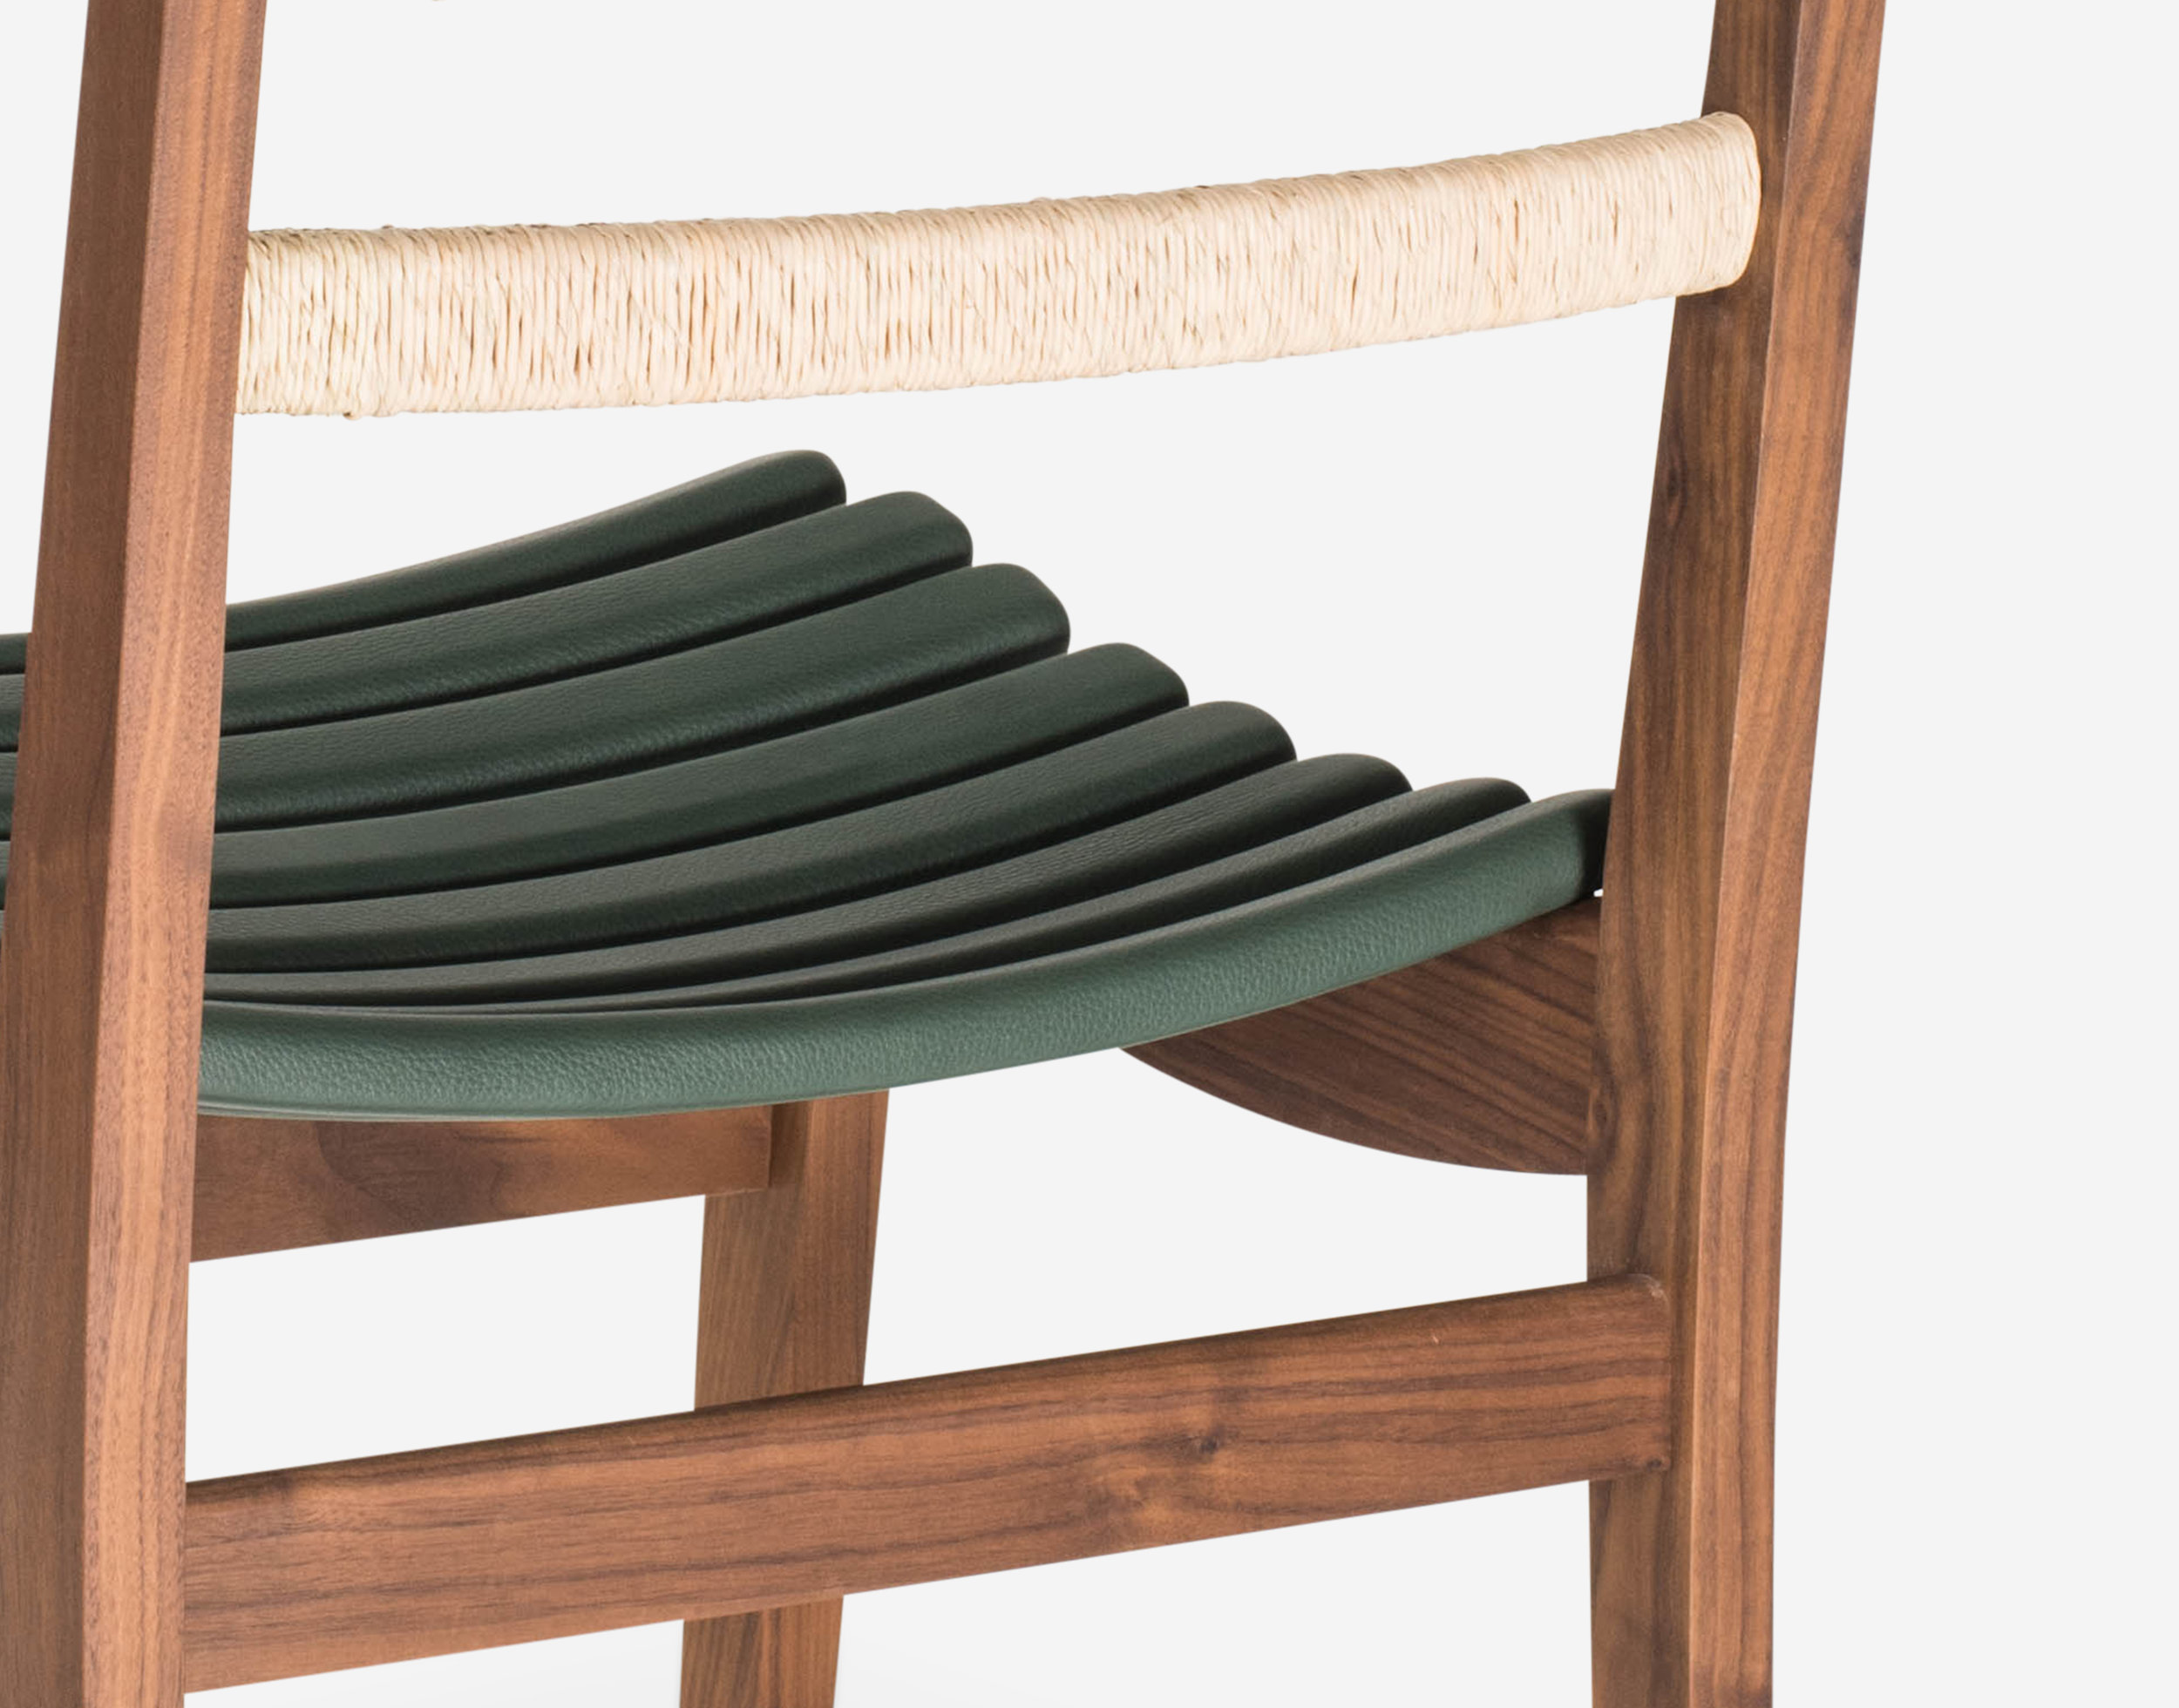 Luteca_MvB_San Miguelito-Dining Chair_Walnut_Green-Leather_D-W.jpg